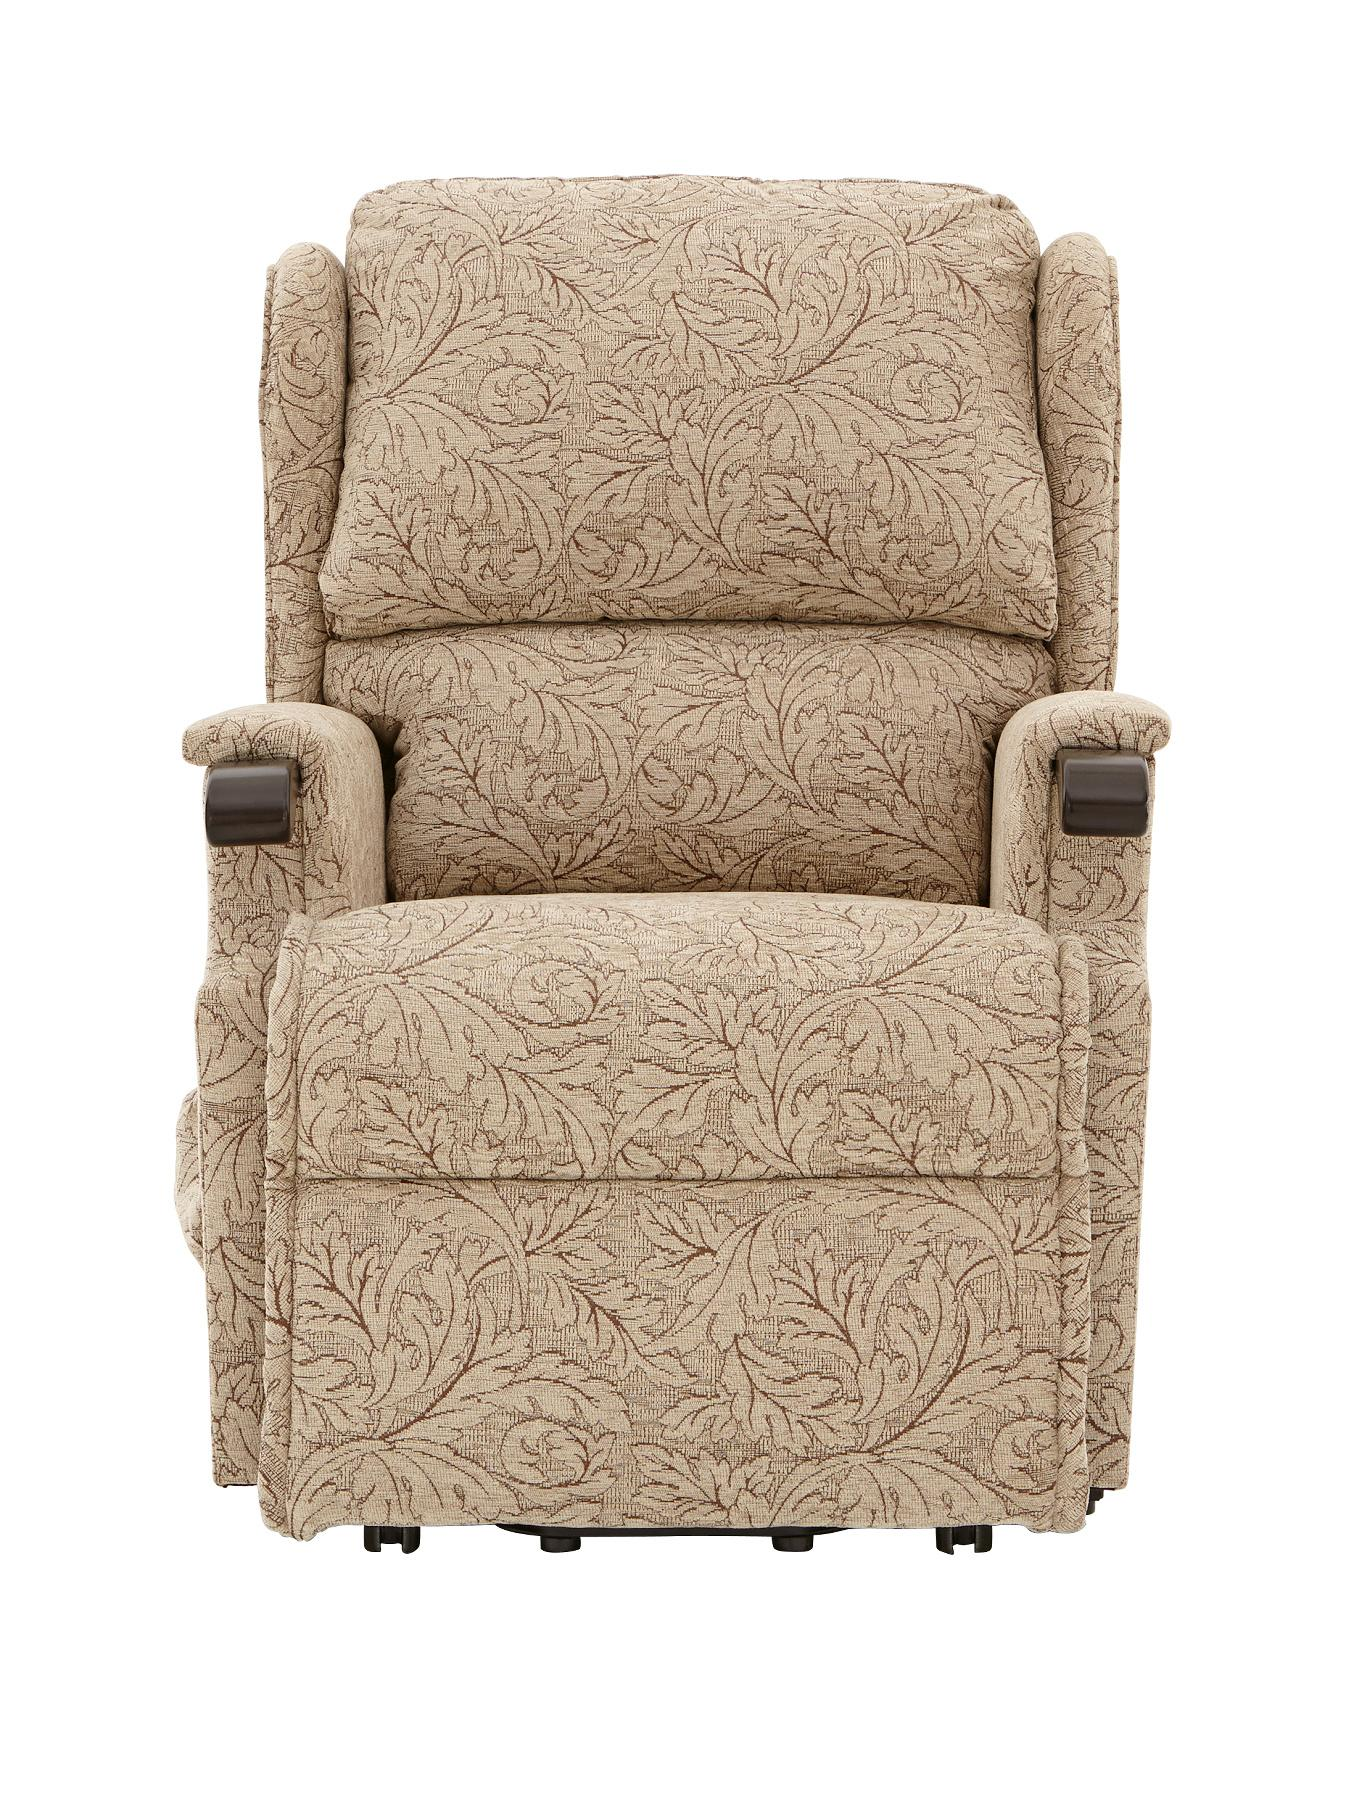 cheap lift chairs chair layout design buy compare prices for best uk deals